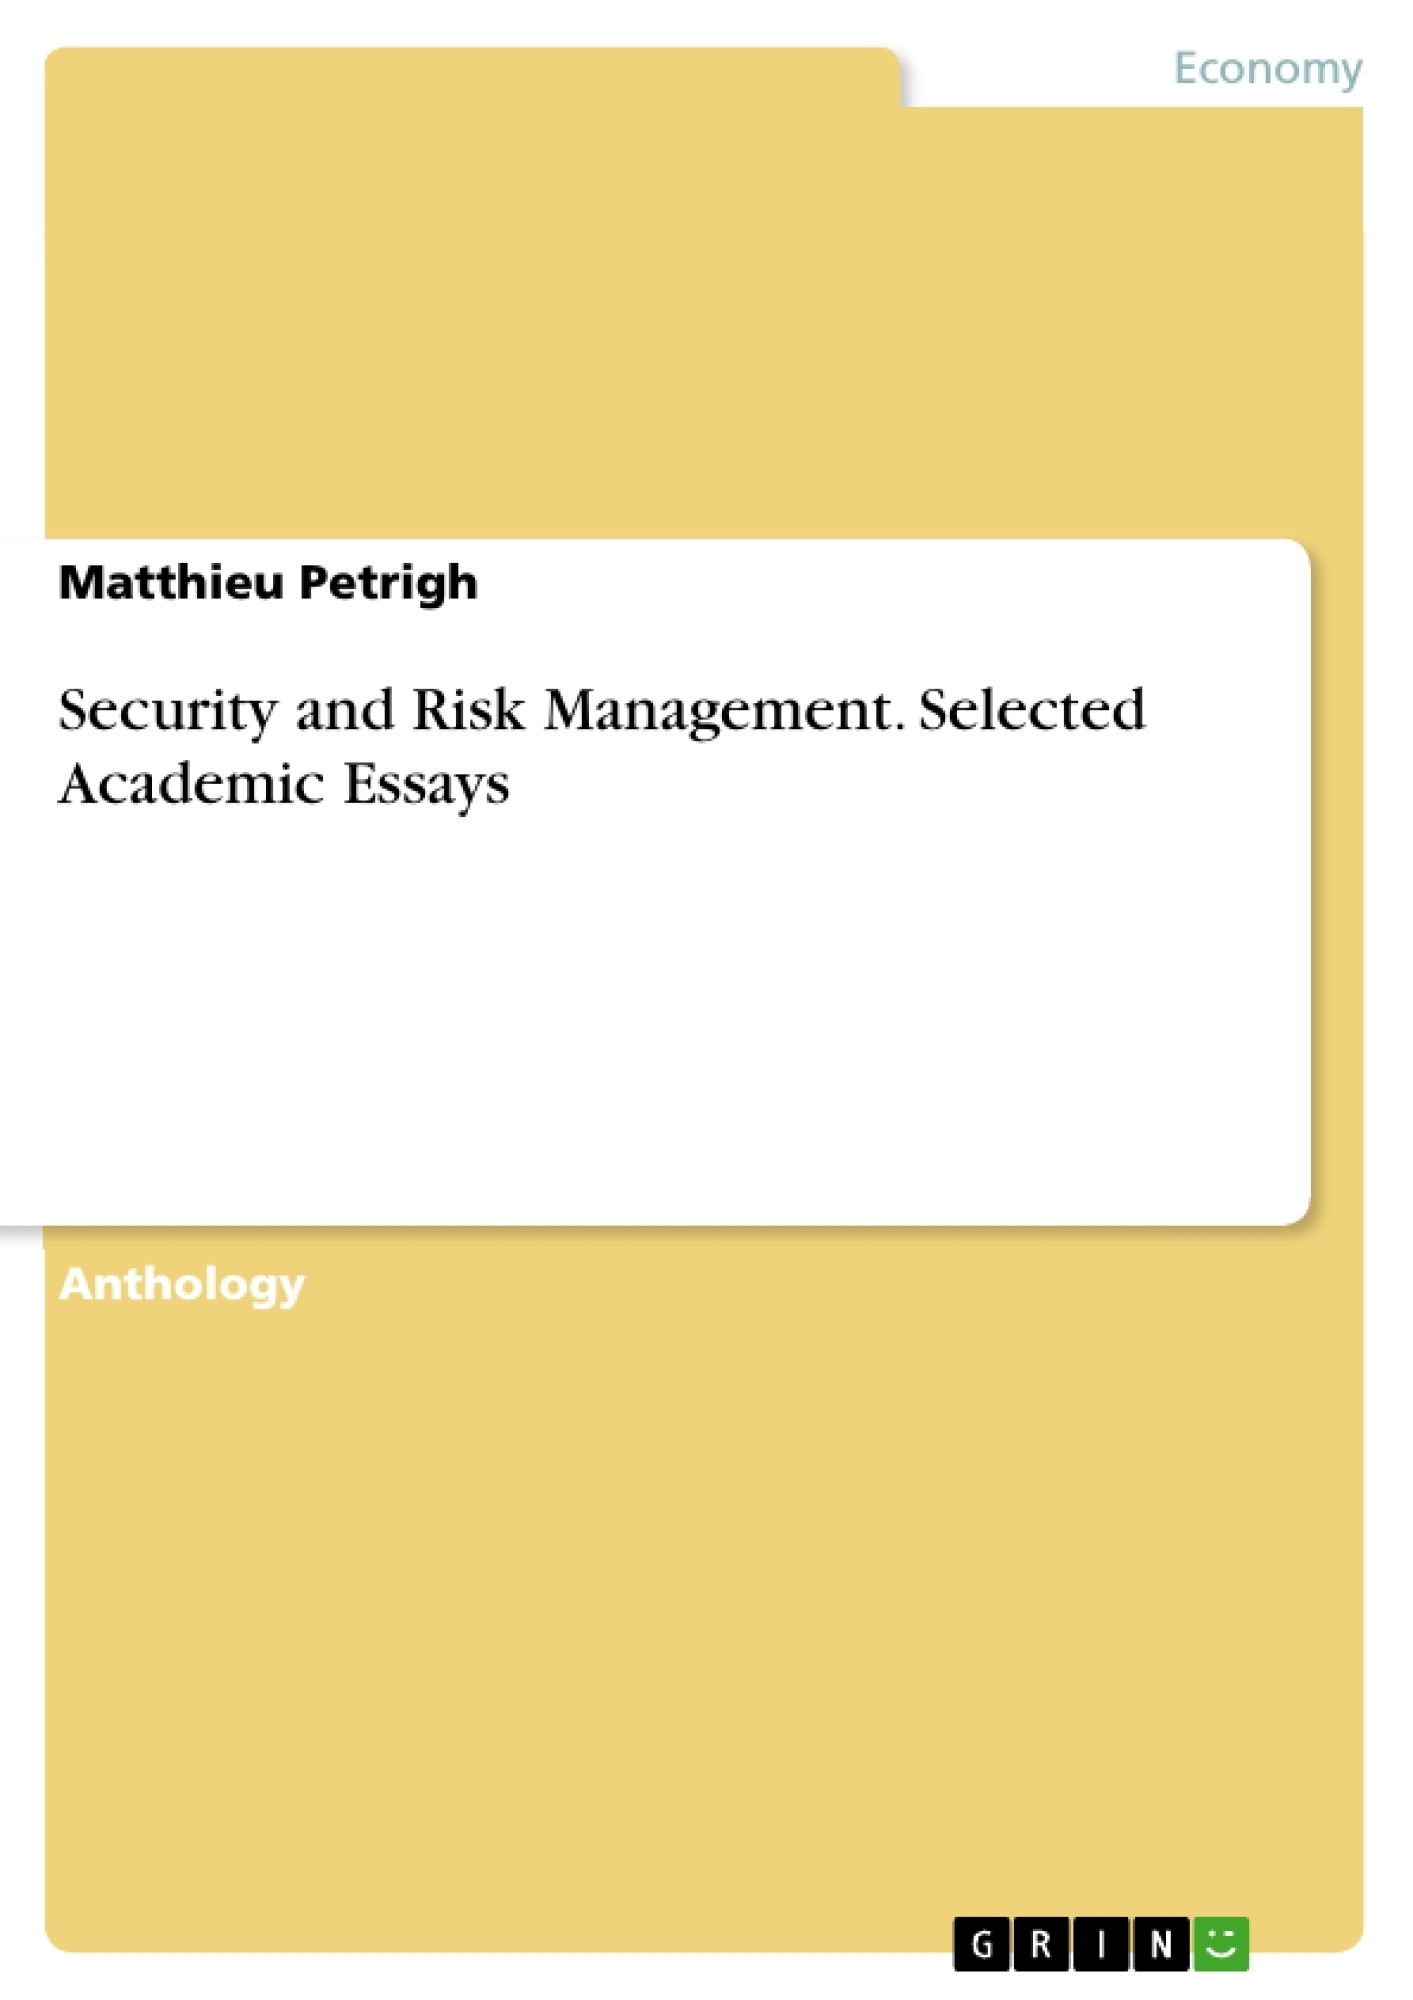 Title: Security and Risk Management. Selected Academic Essays